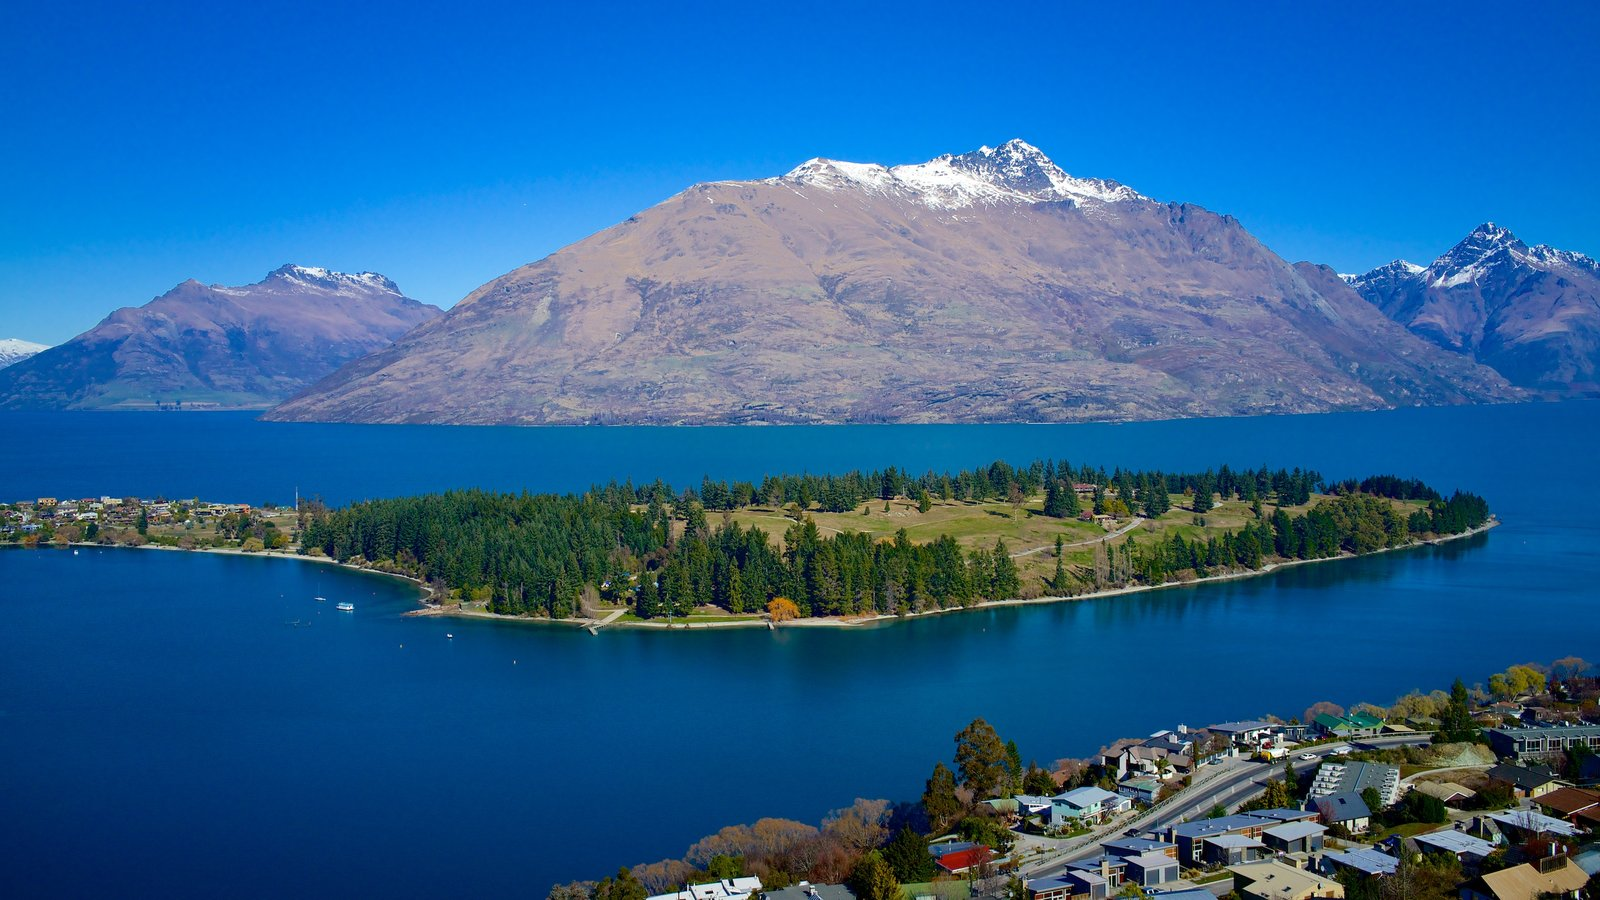 Queenstown featuring mountains, a lake or waterhole and landscape views